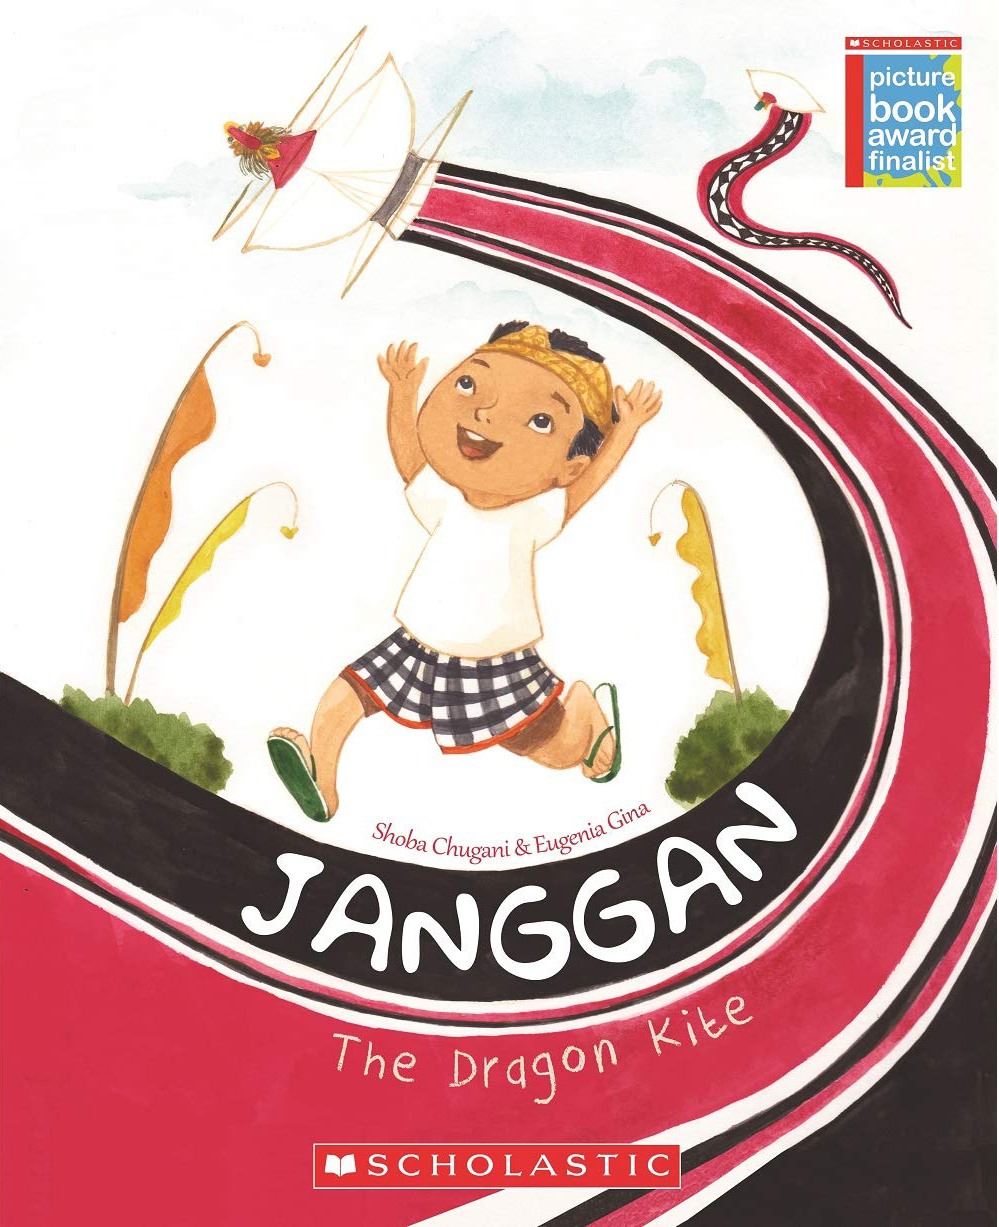 Janggan Dragon Kite